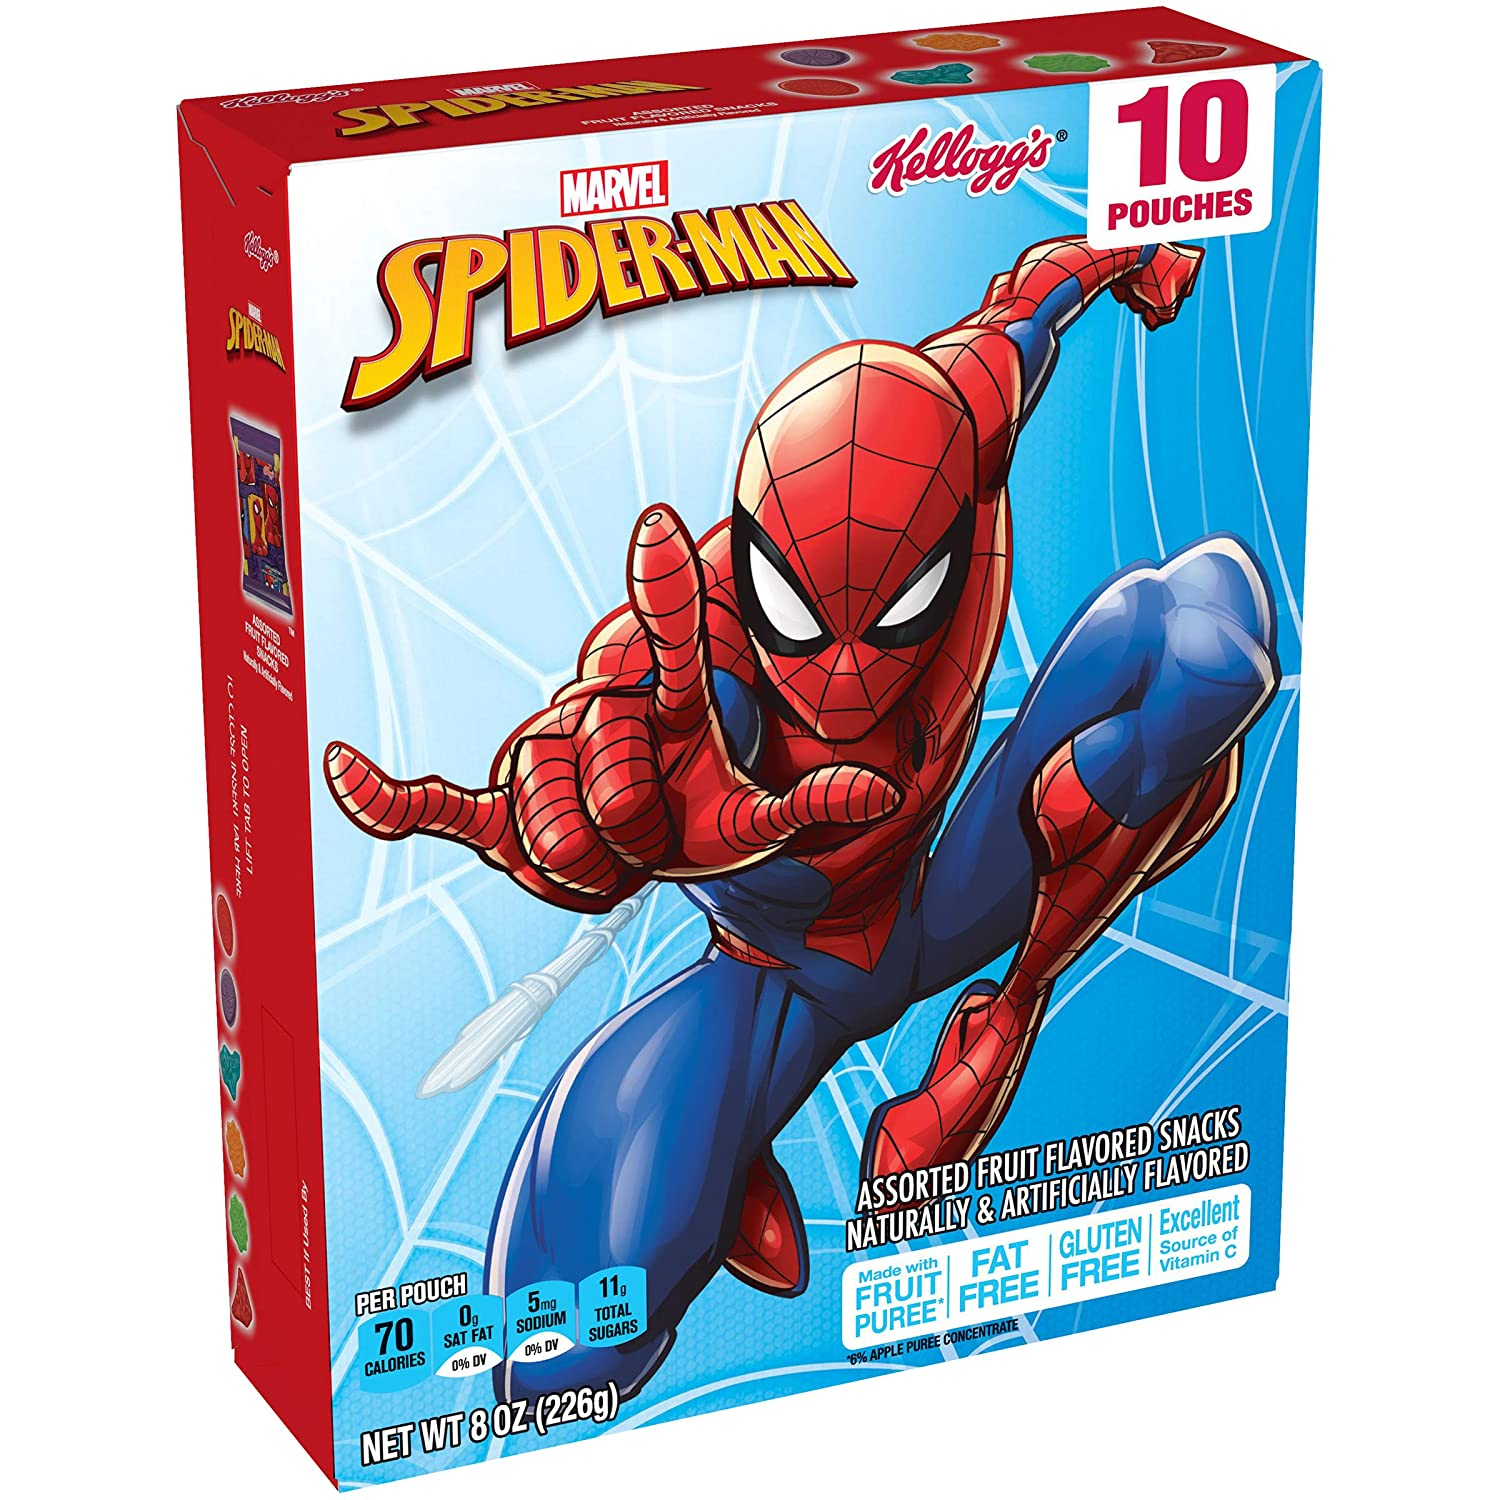 Spiderman, Assorted Fruit Flavored Snacks, Gluten Free, Fat Free, 8 Ounce, 10 Count